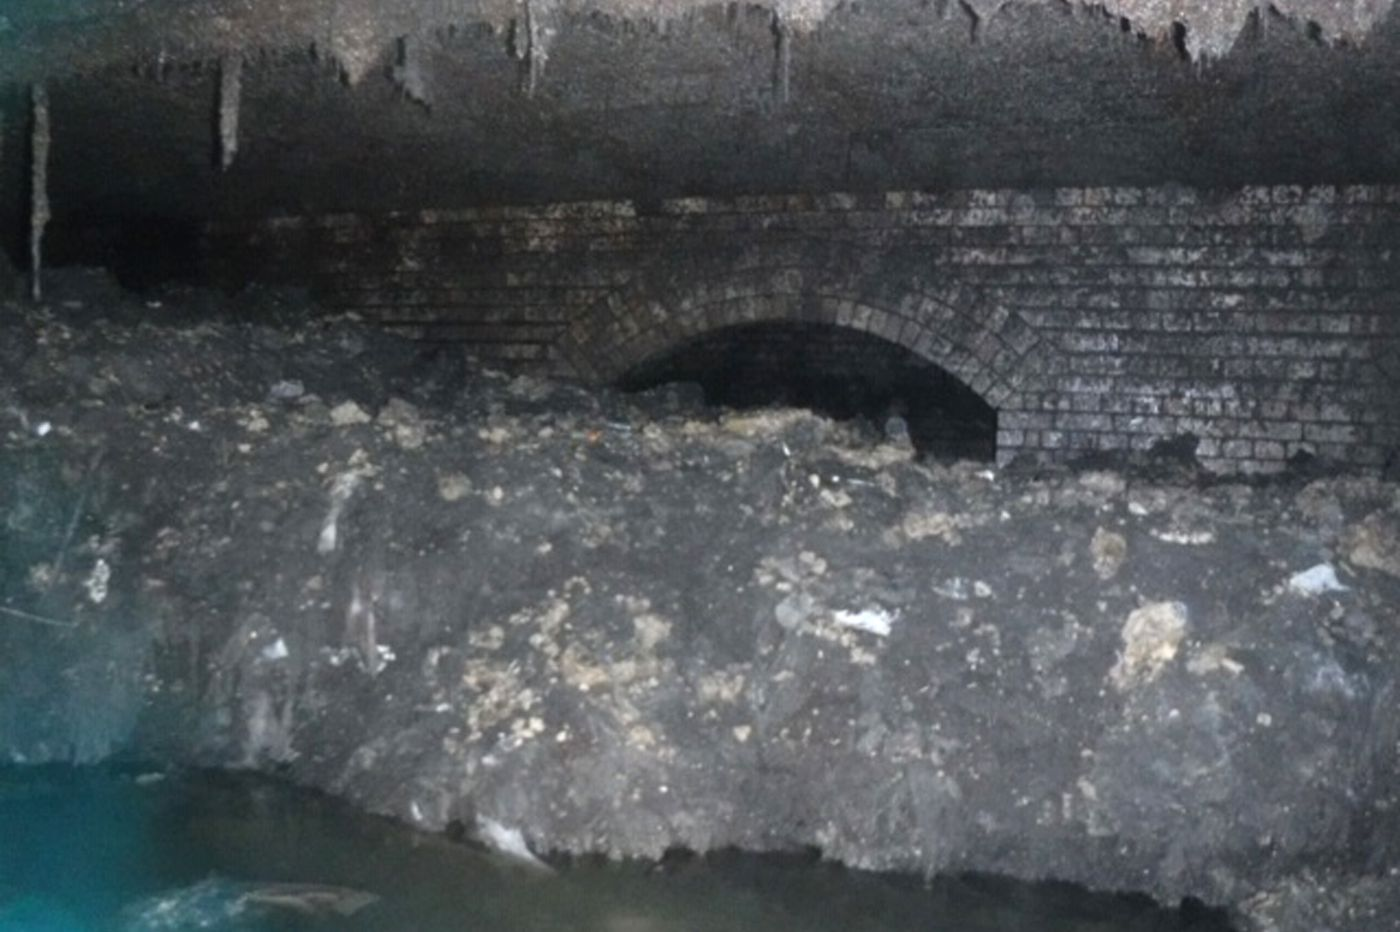 Fatbergs, globs of solid waste, threaten sewers this season | Opinion